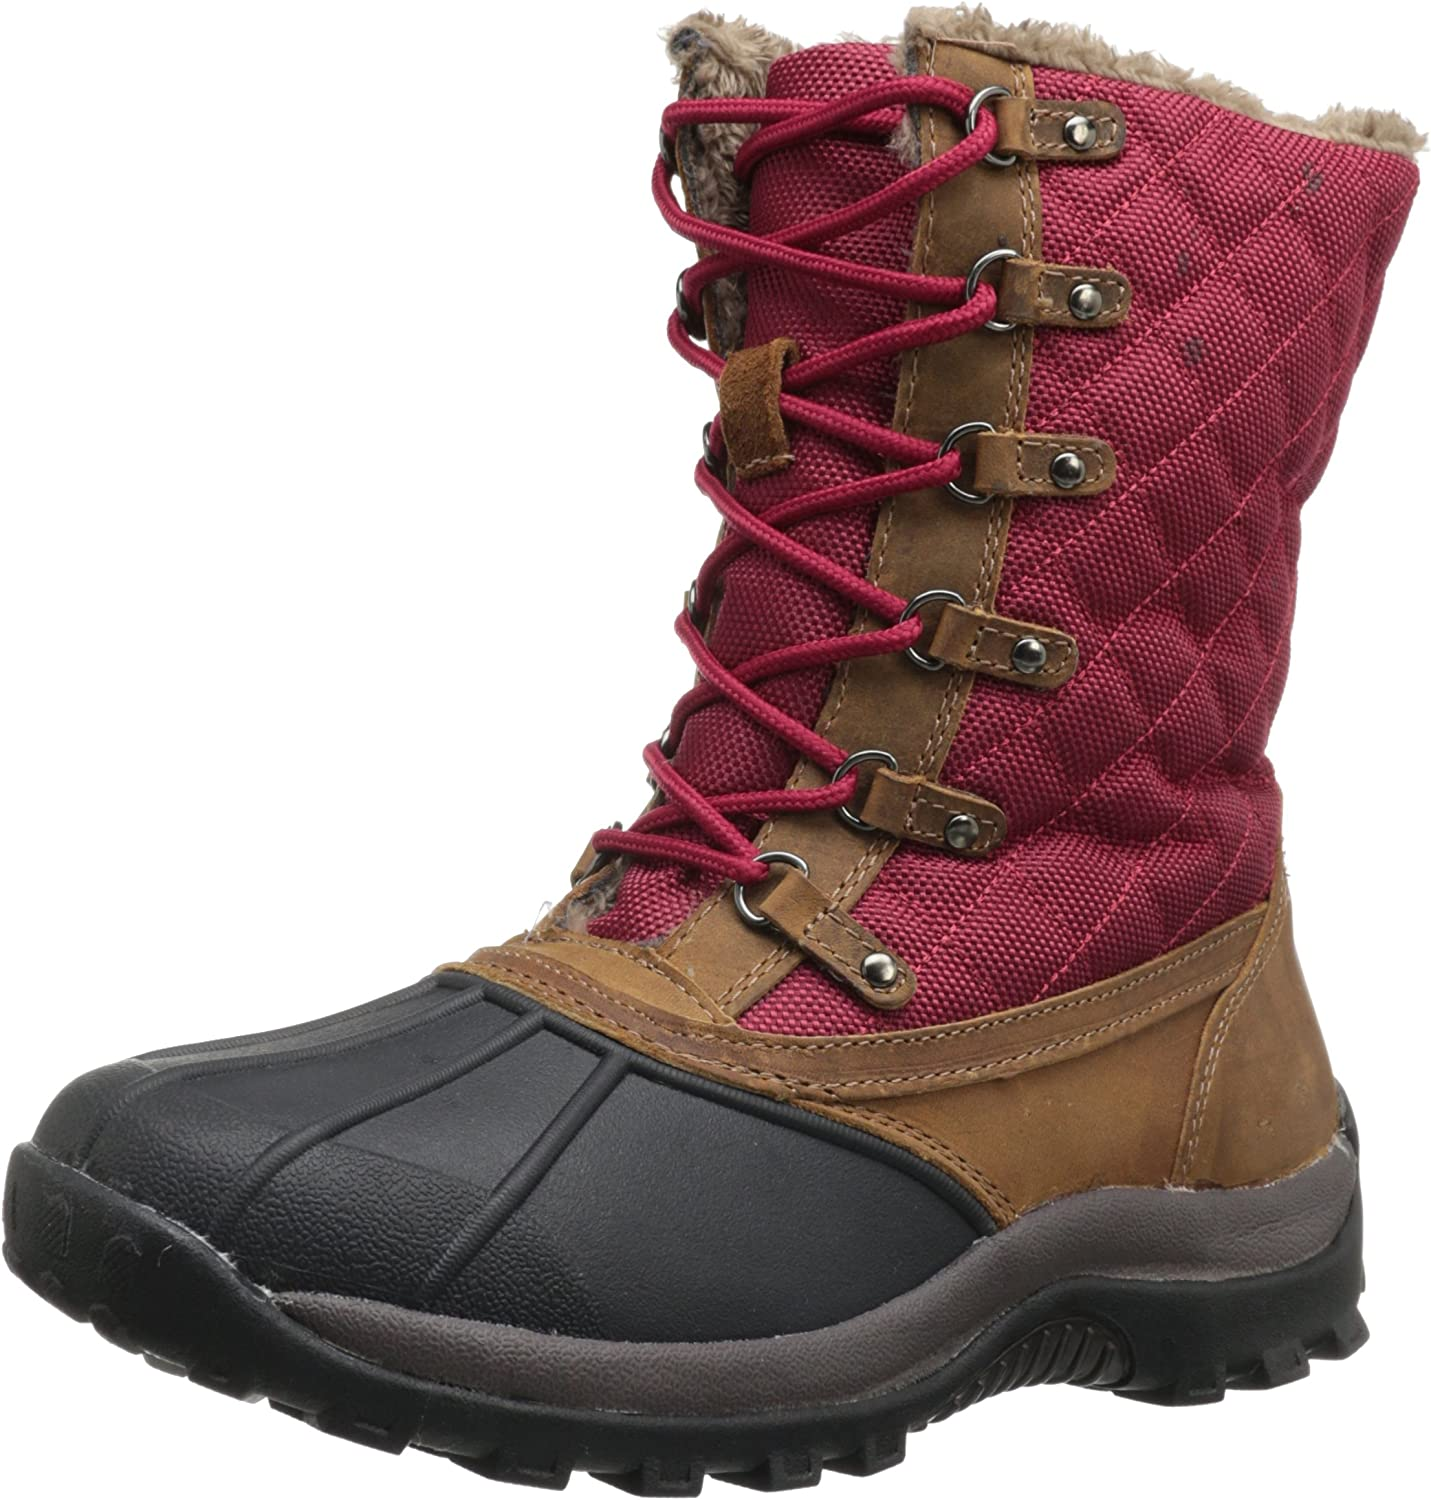 Propet Women's Blizzard Mid Lace Boot Brown